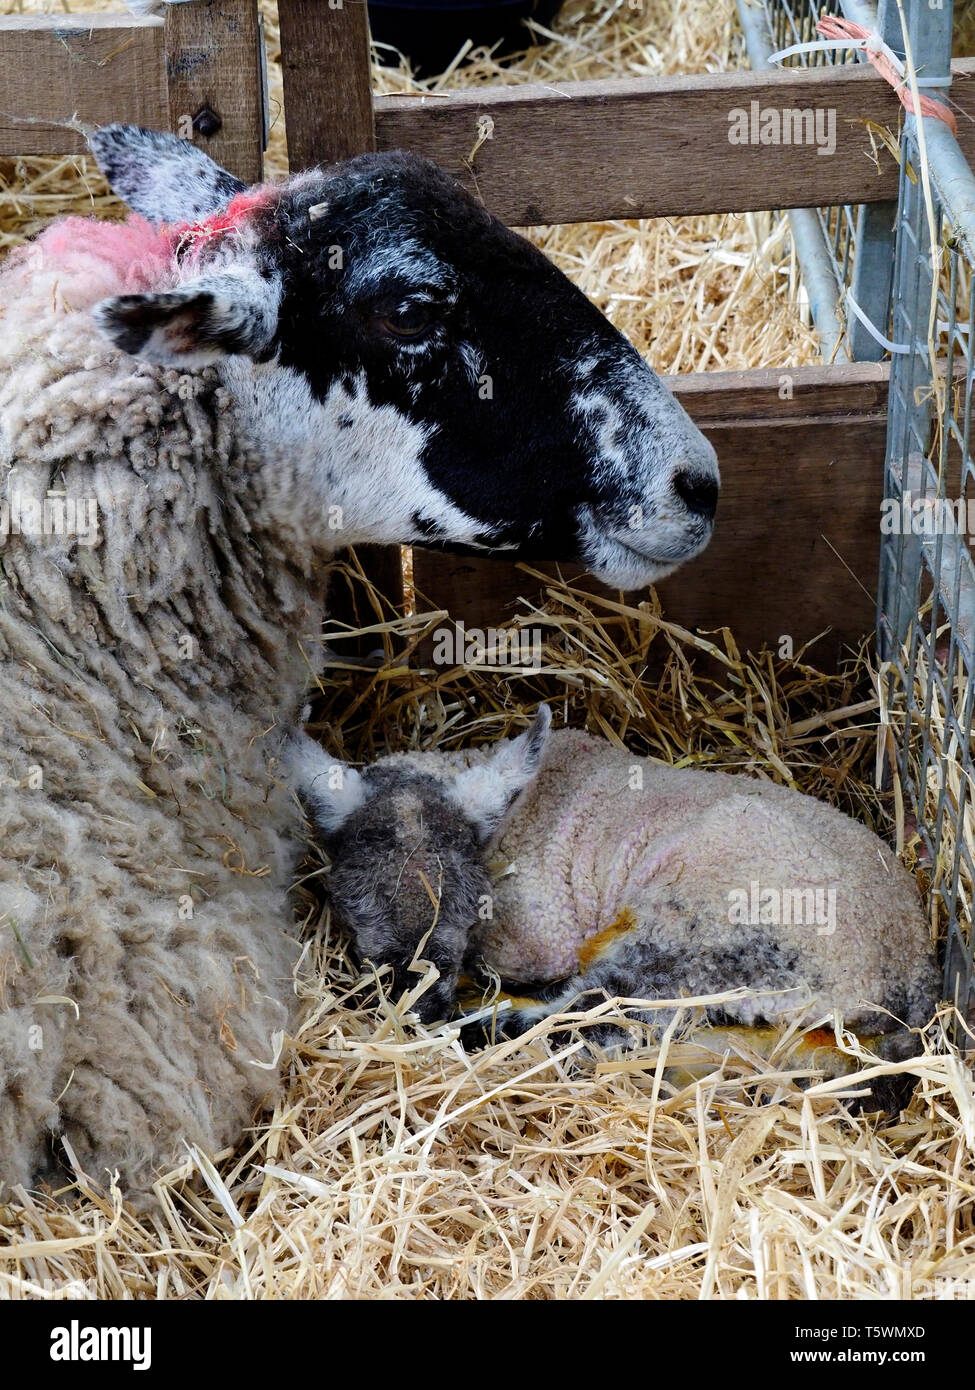 Ewe with young lambs lambs laying on straw bedding in a nursery barn on a farm in Norfolk. Stock Photo